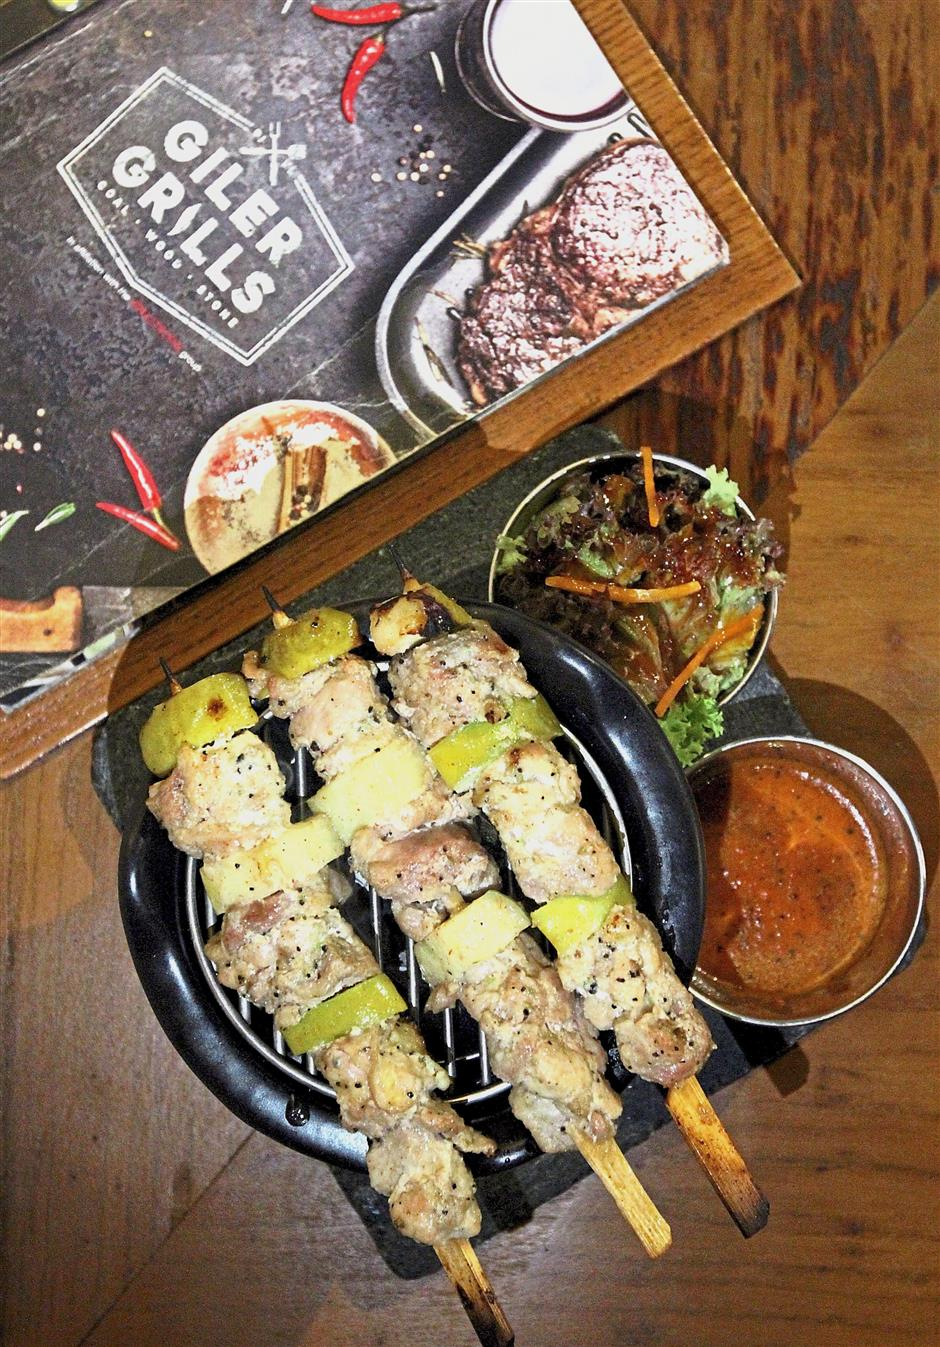 For skewered meats, Giler Grills offers both charcoal pit versions and flaming versions. Seen here is the Apple Chicken charcoal pit skewer.